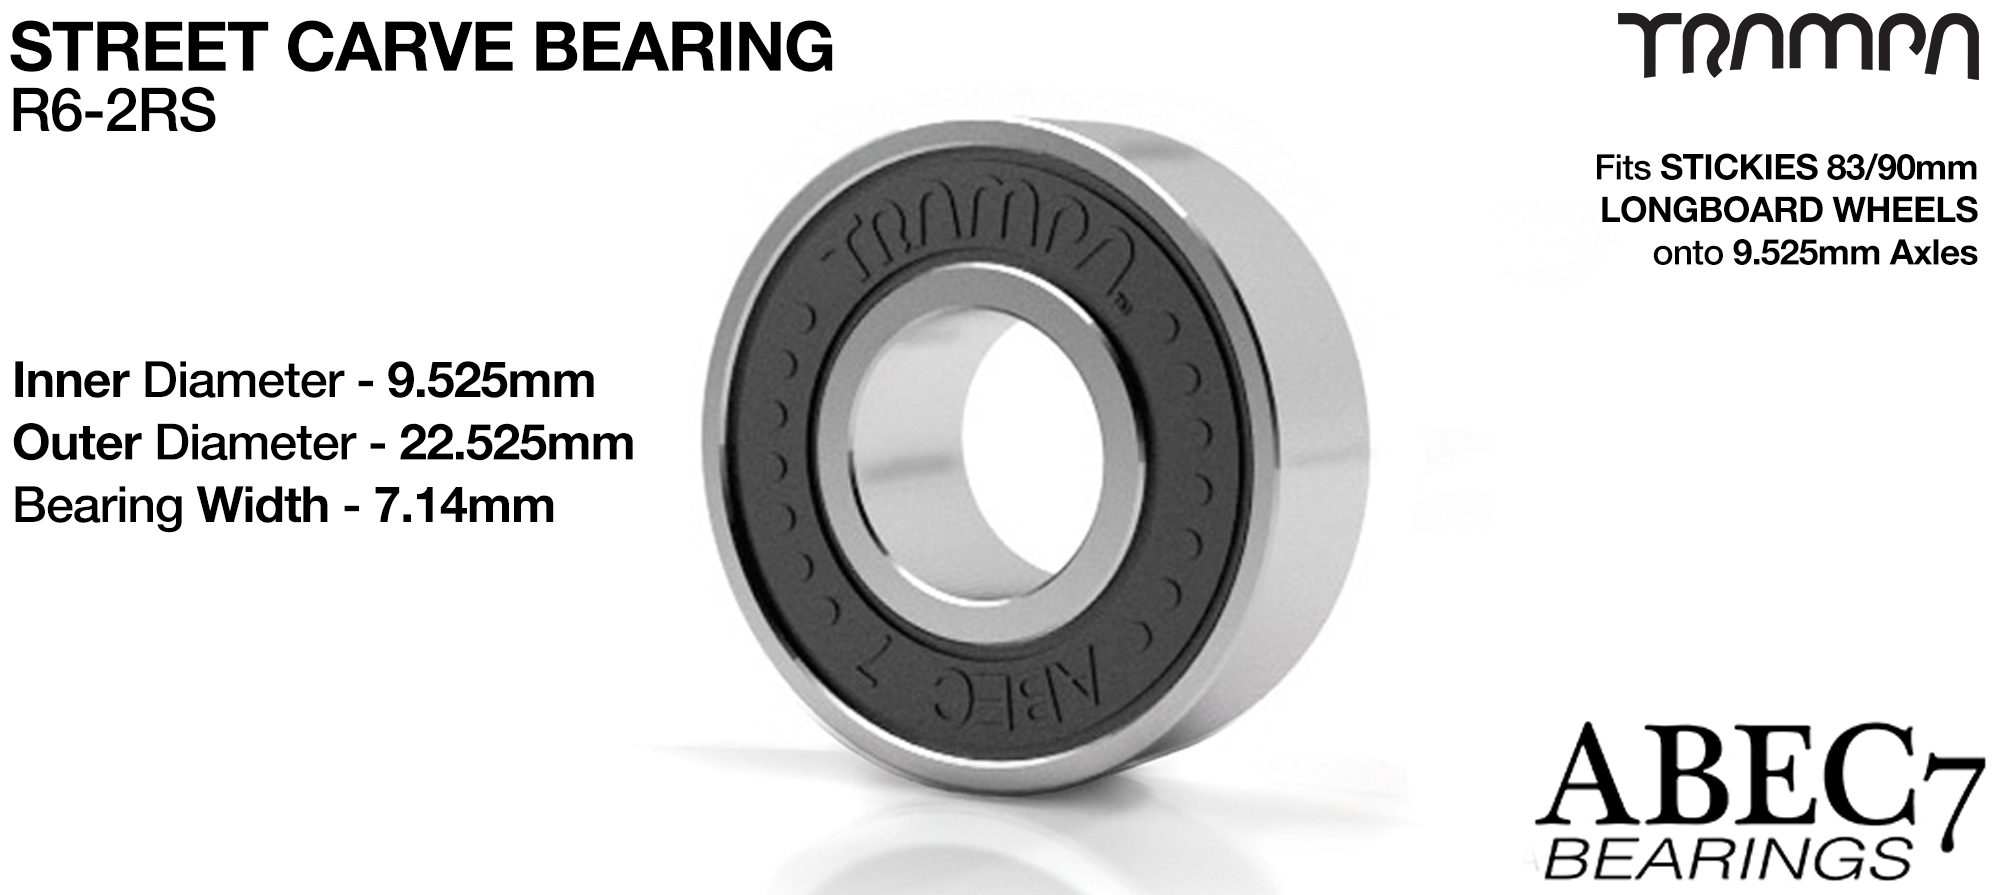 BLACK 9.525 x 22.225mm R6-2RS Bearings